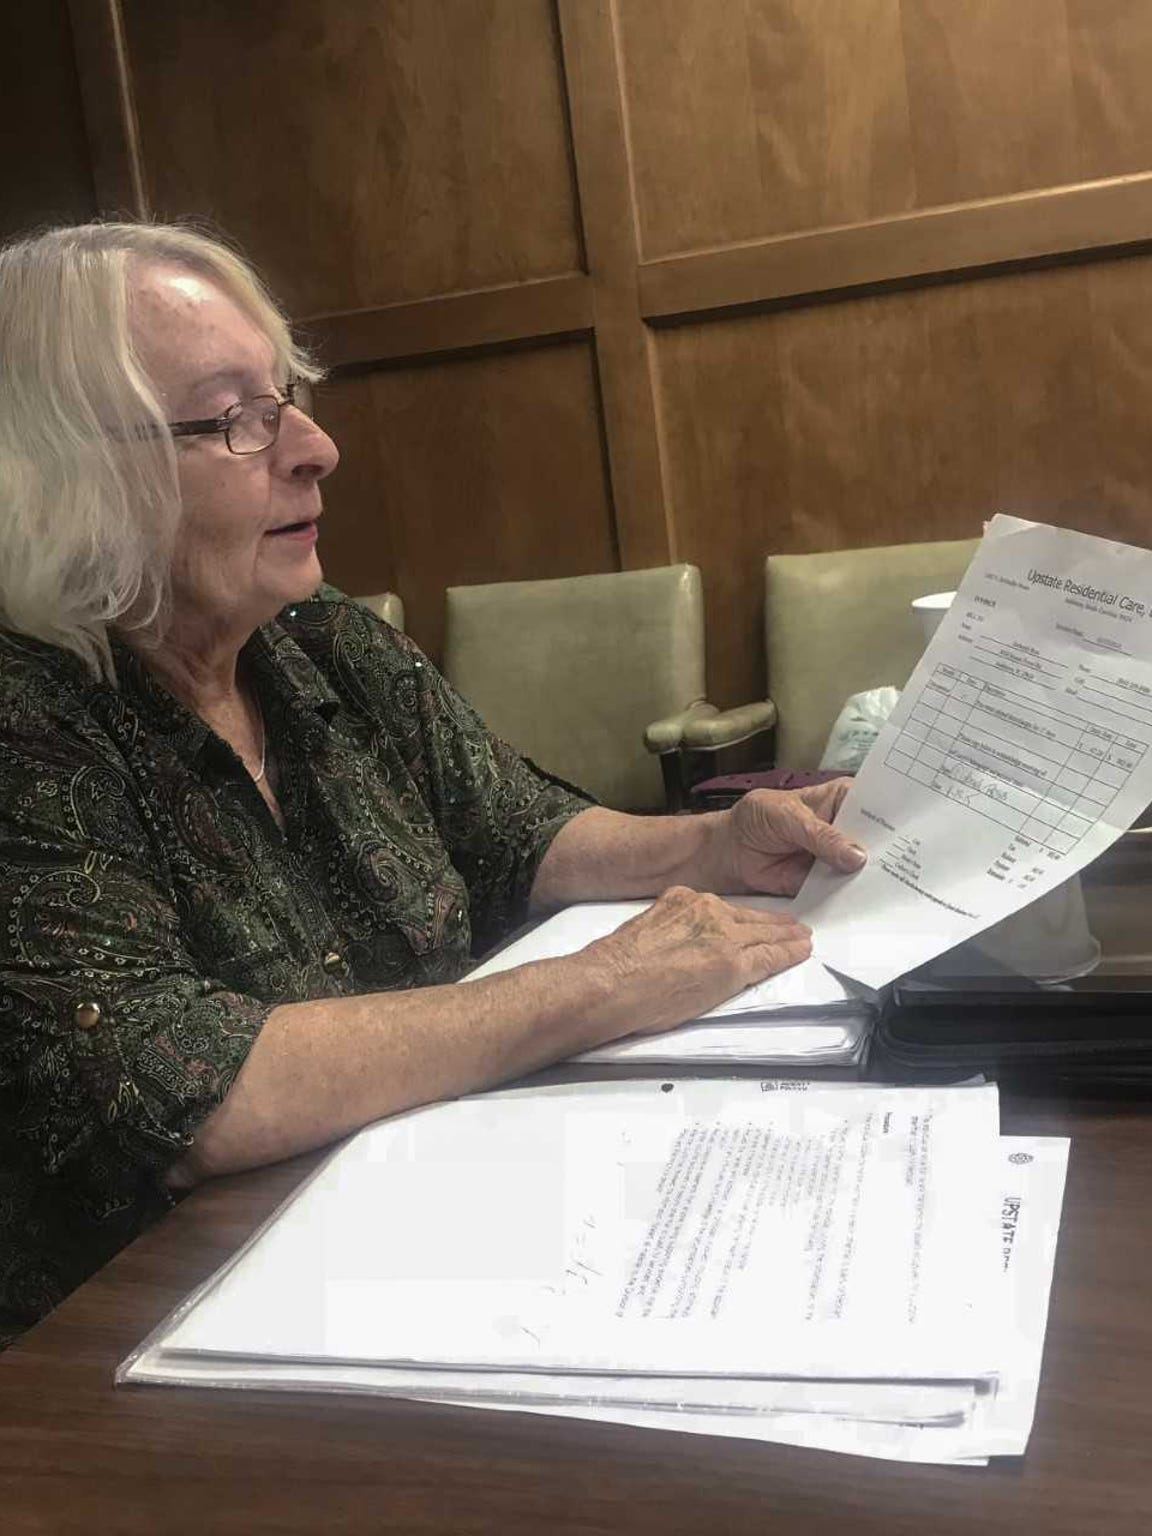 Deborah Ross, the wife of Charles Larry Ross, looks over her paperwork from Upstate Residential Care, an Anderson assisted living facility.